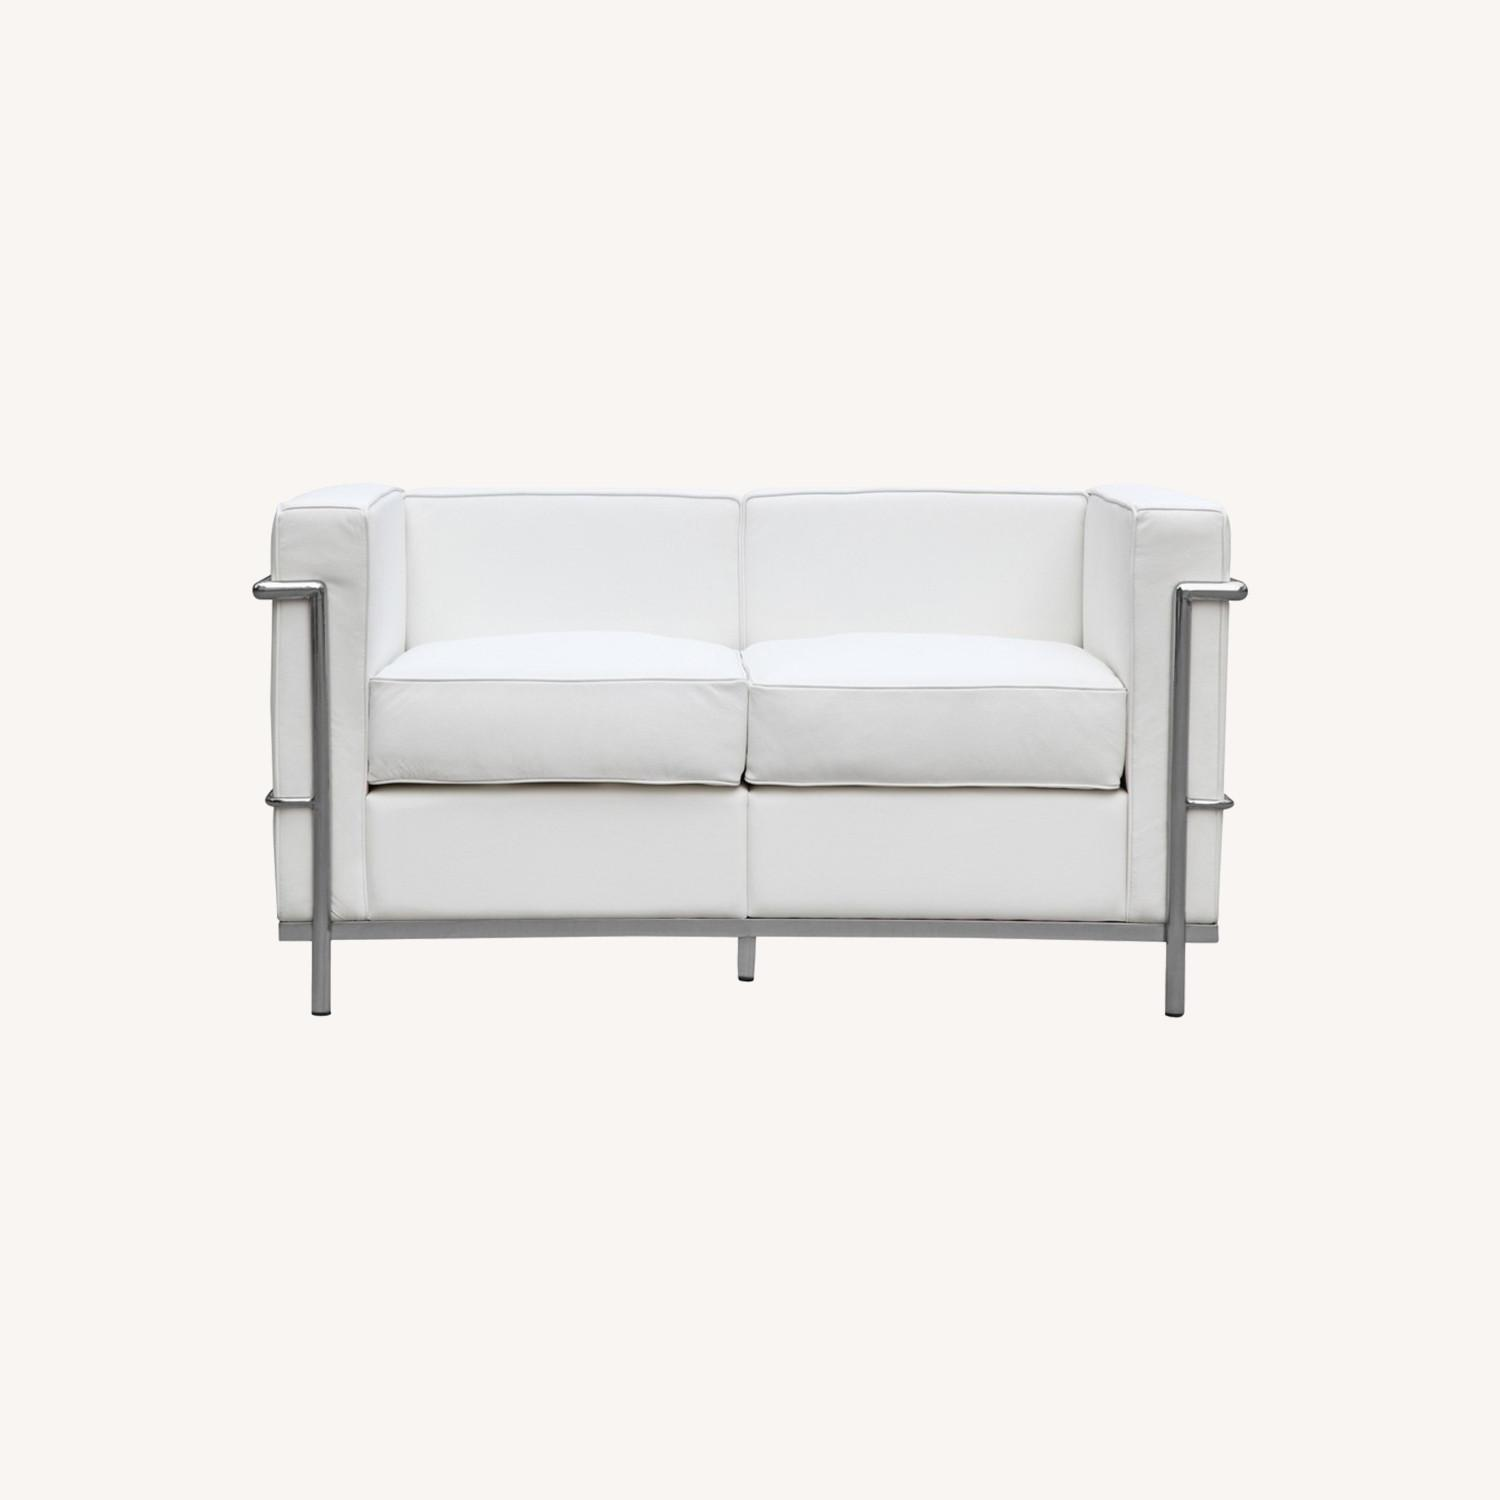 Loveseat In White Leather W/ Stainless Steel Frame - image-7